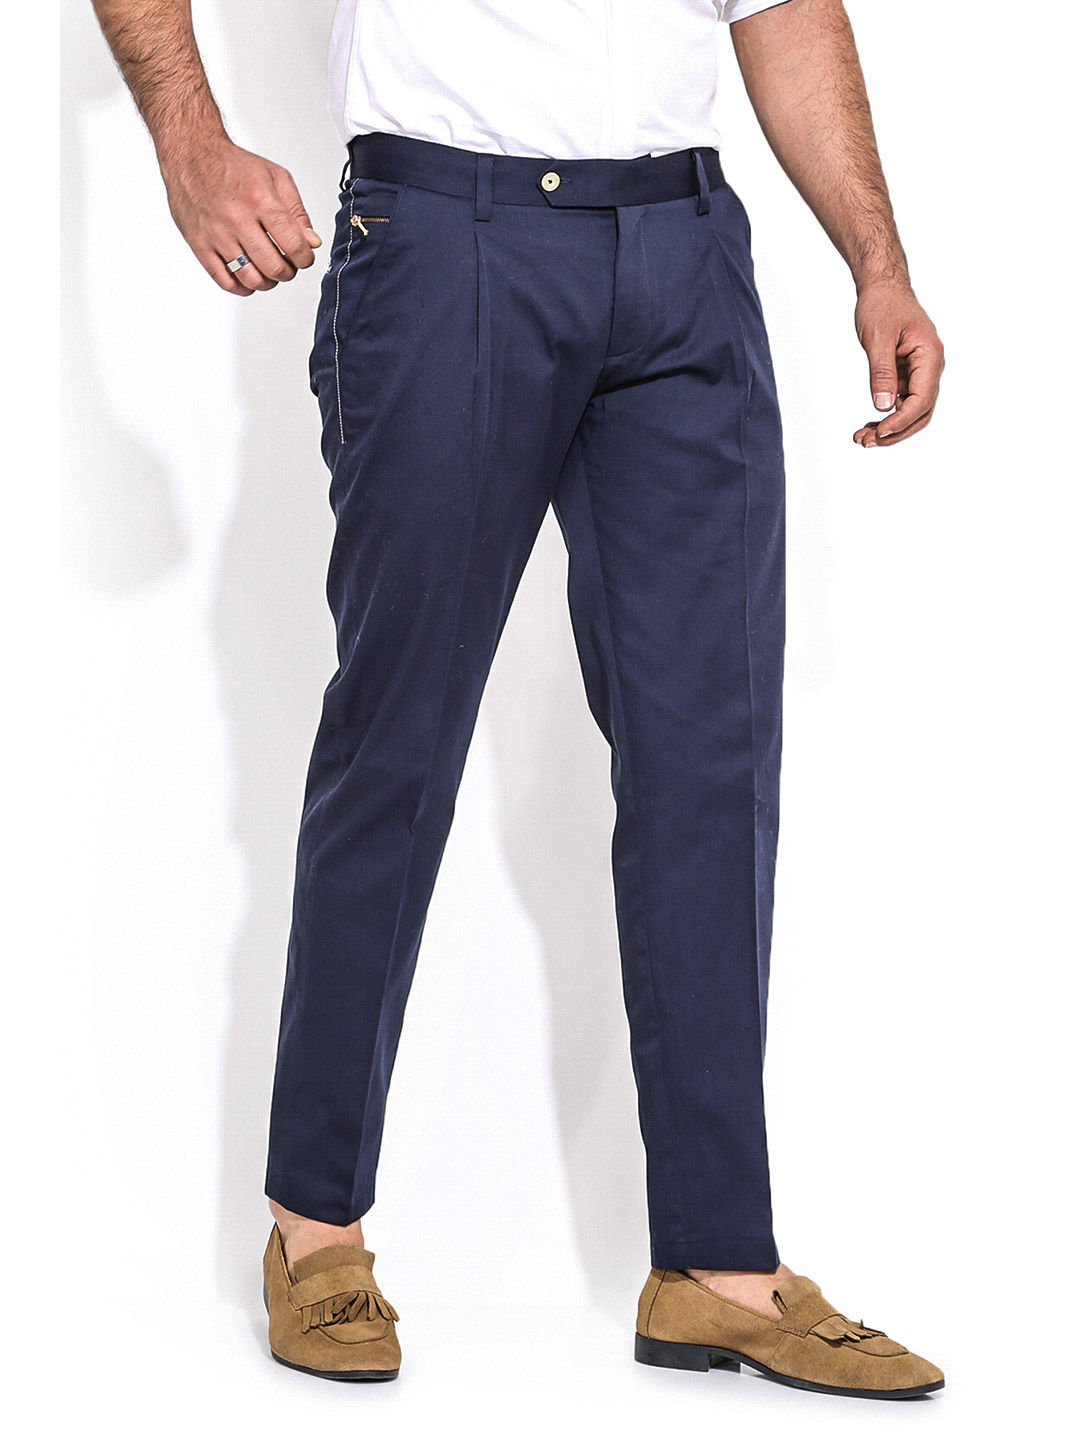 Men's Trousers Sewing Pattern (Sizes 46-56 Russian)